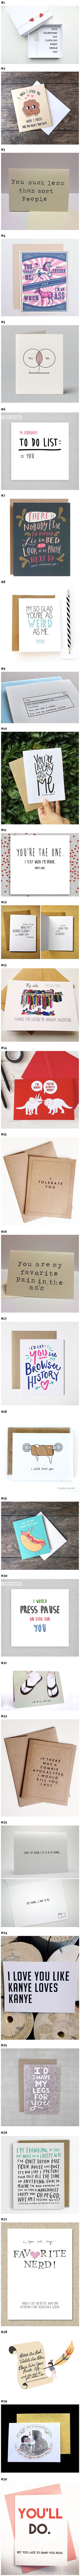 We have rounded up some funny Valentine cards that geeks would love.                                                                                                                                                                                 More